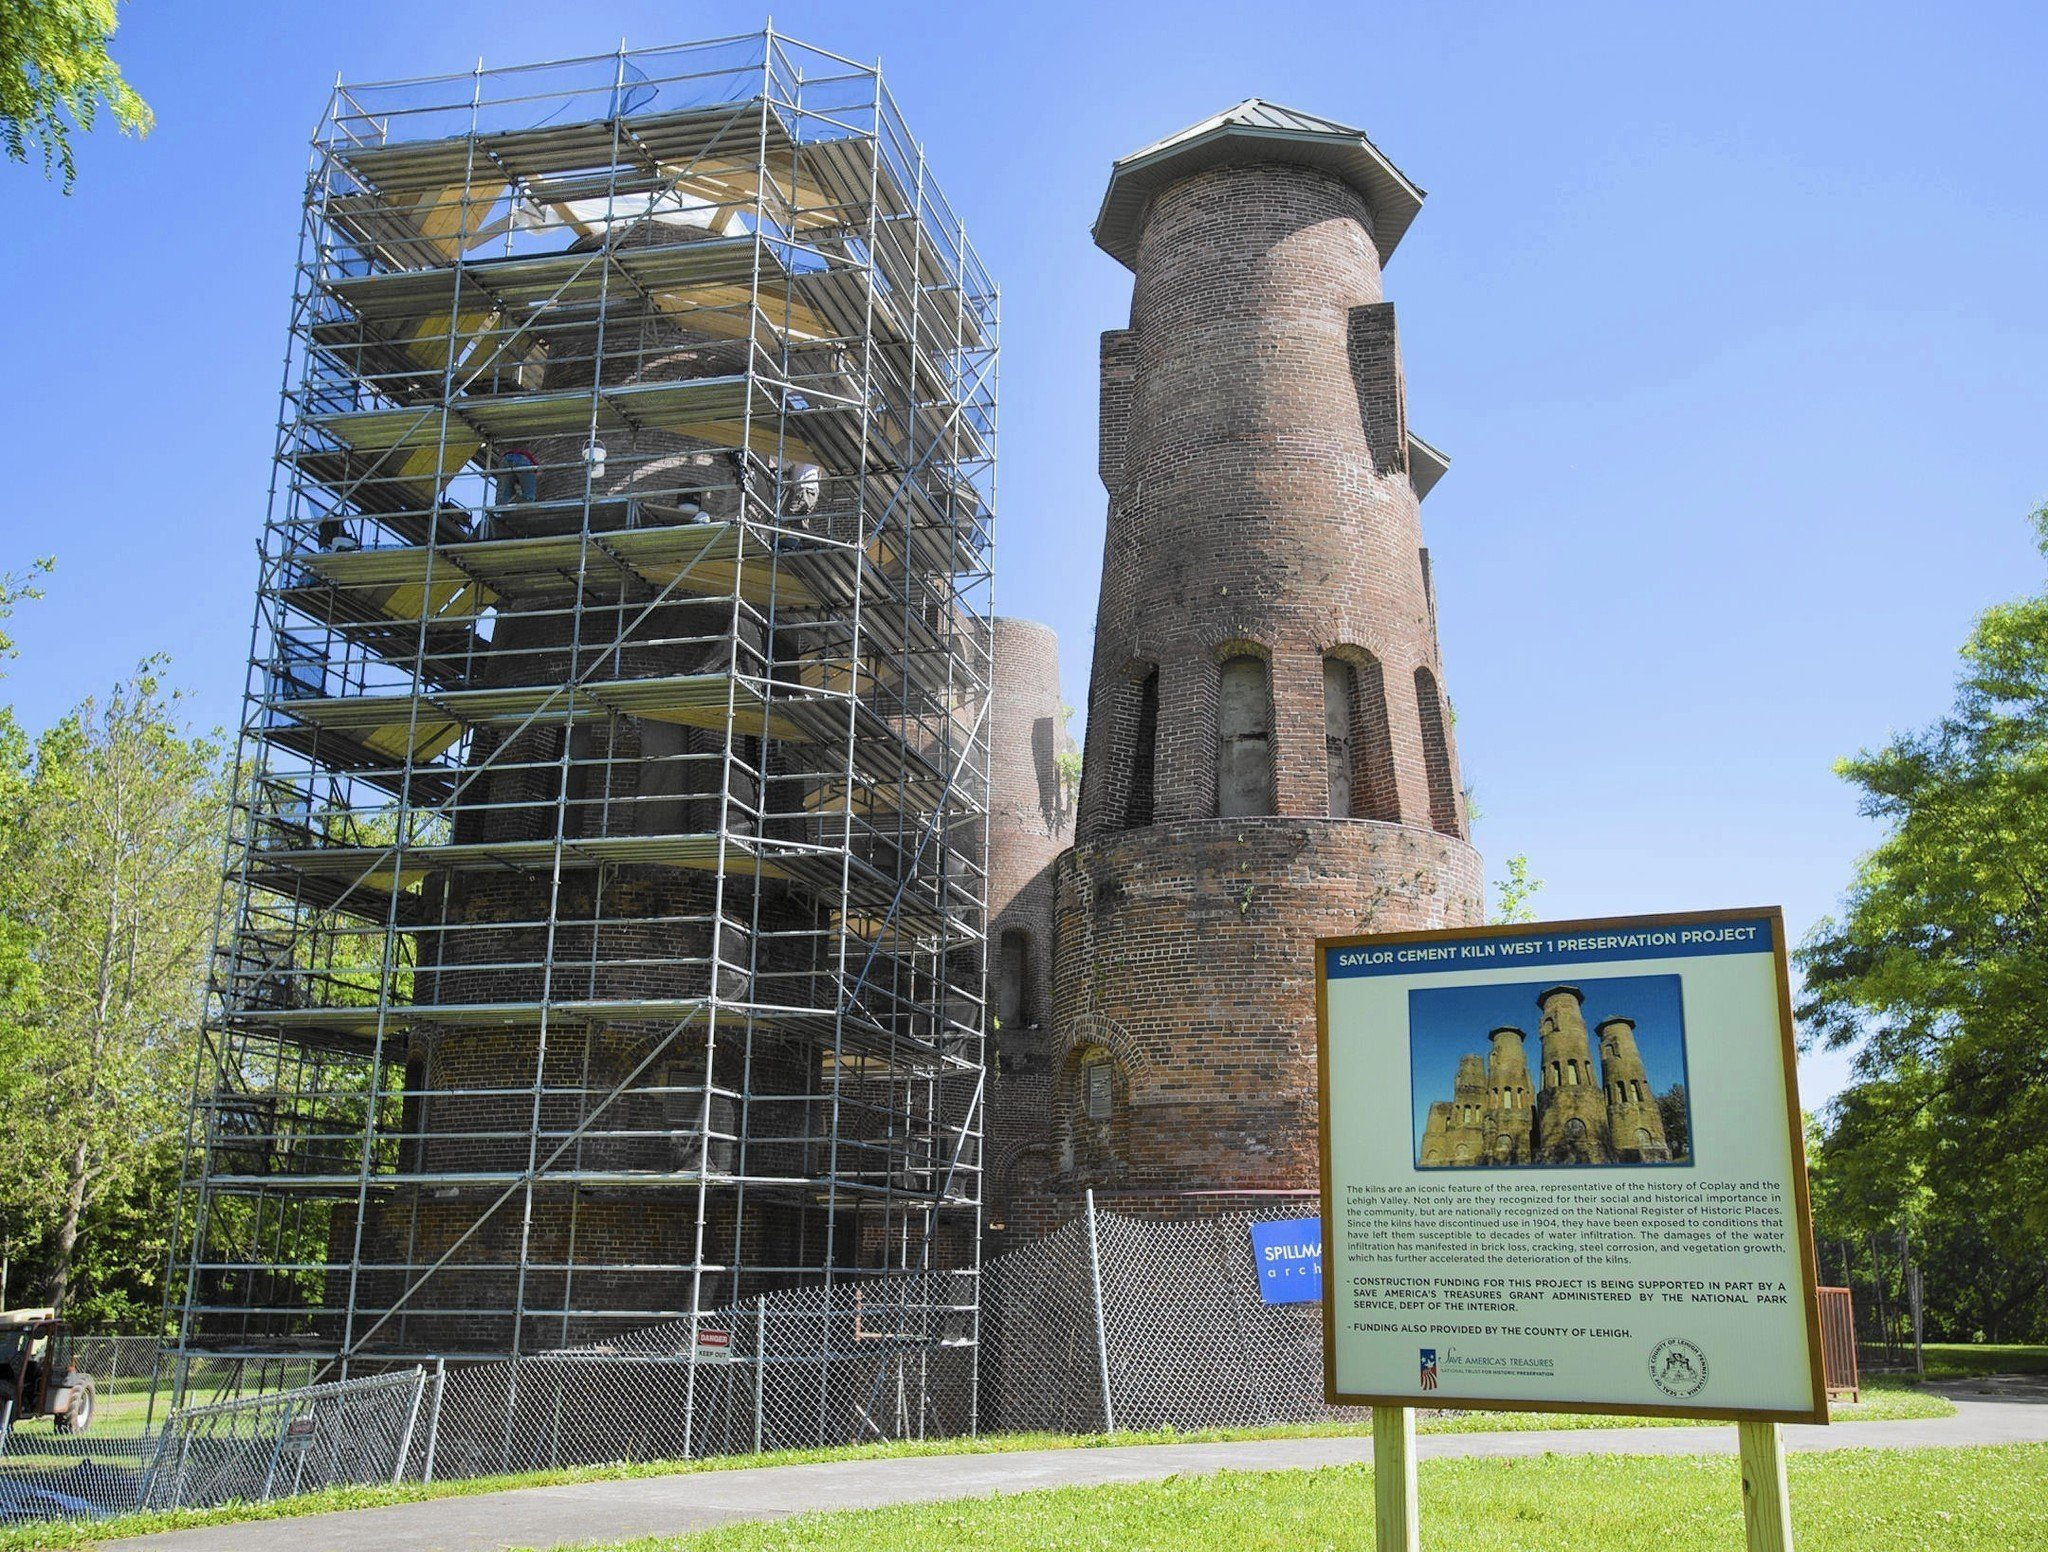 Scaffolding surrounds one of the kilns as stabilization efforts take place.